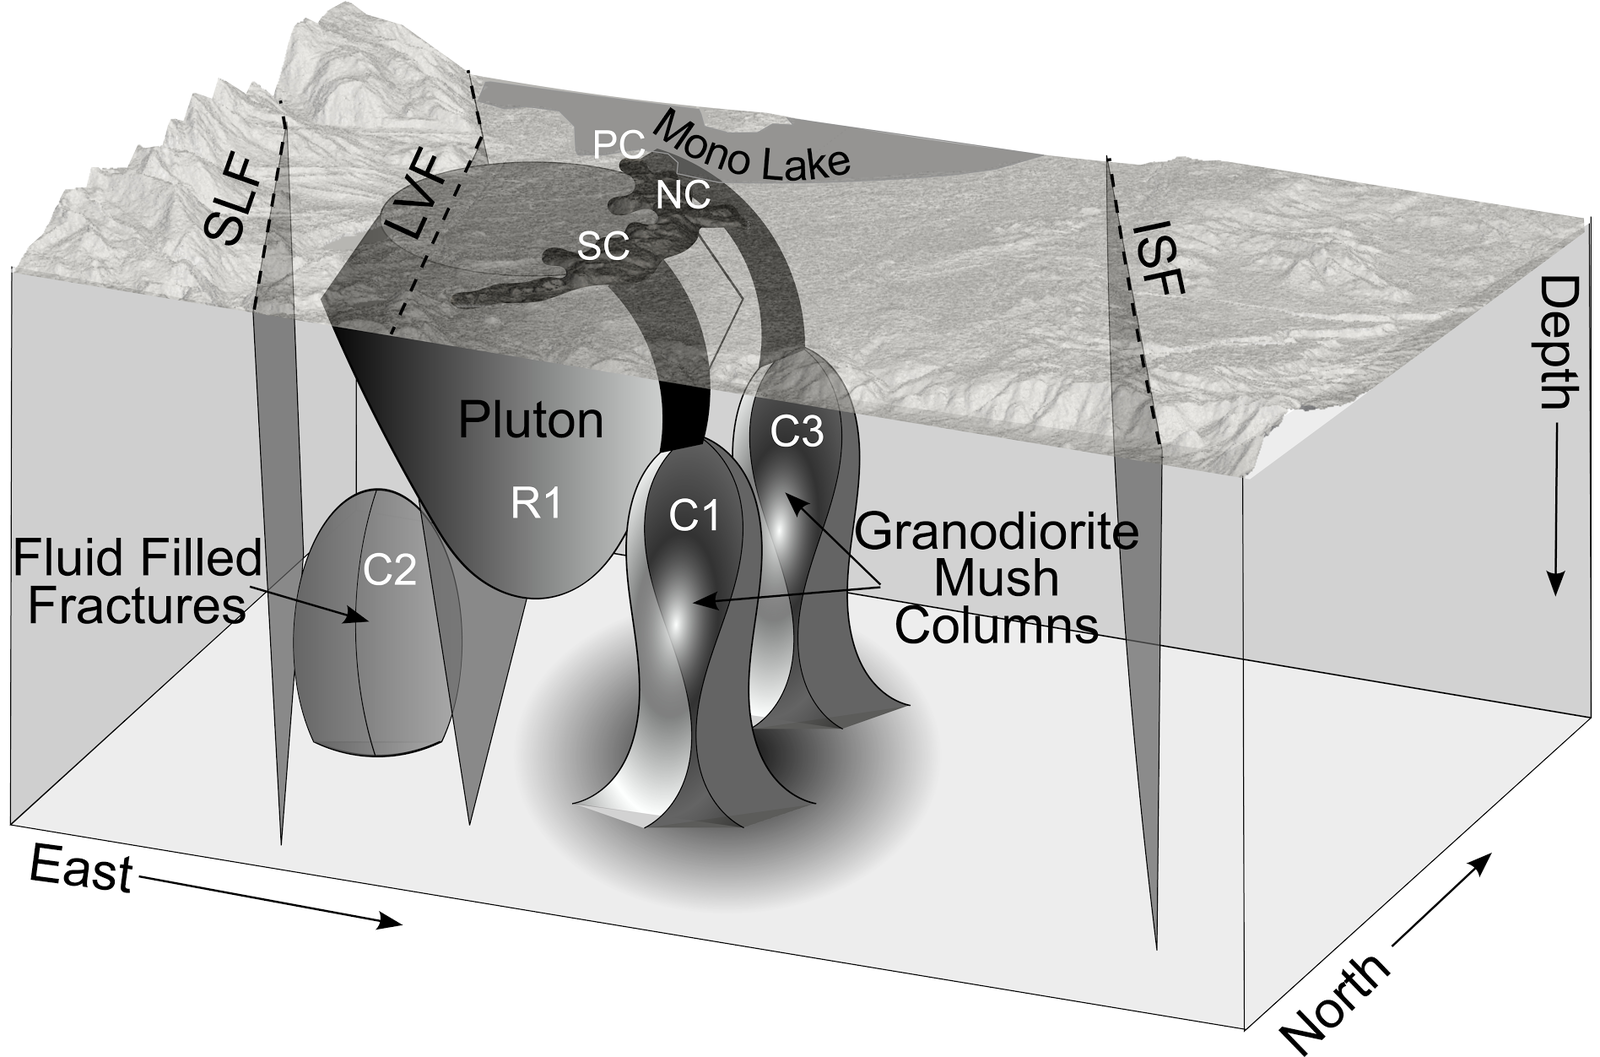 Geological model of the region lake Mono / Mono craters based on 3D imaging - C1 and C3 are partially crystallized magma columns&#x3B; the connection C1-SC / South Casting - the connection C3 - NC and PC / North casting and Crater Panum&#x3B; C2: fractured zone containing fluids&#x3B; R1 cold pluton&#x3B; hatched lines correspond to a faults modelisation: LVF / Lee Vining fault and ISF / Indian Springs fault. - Doc. USGS